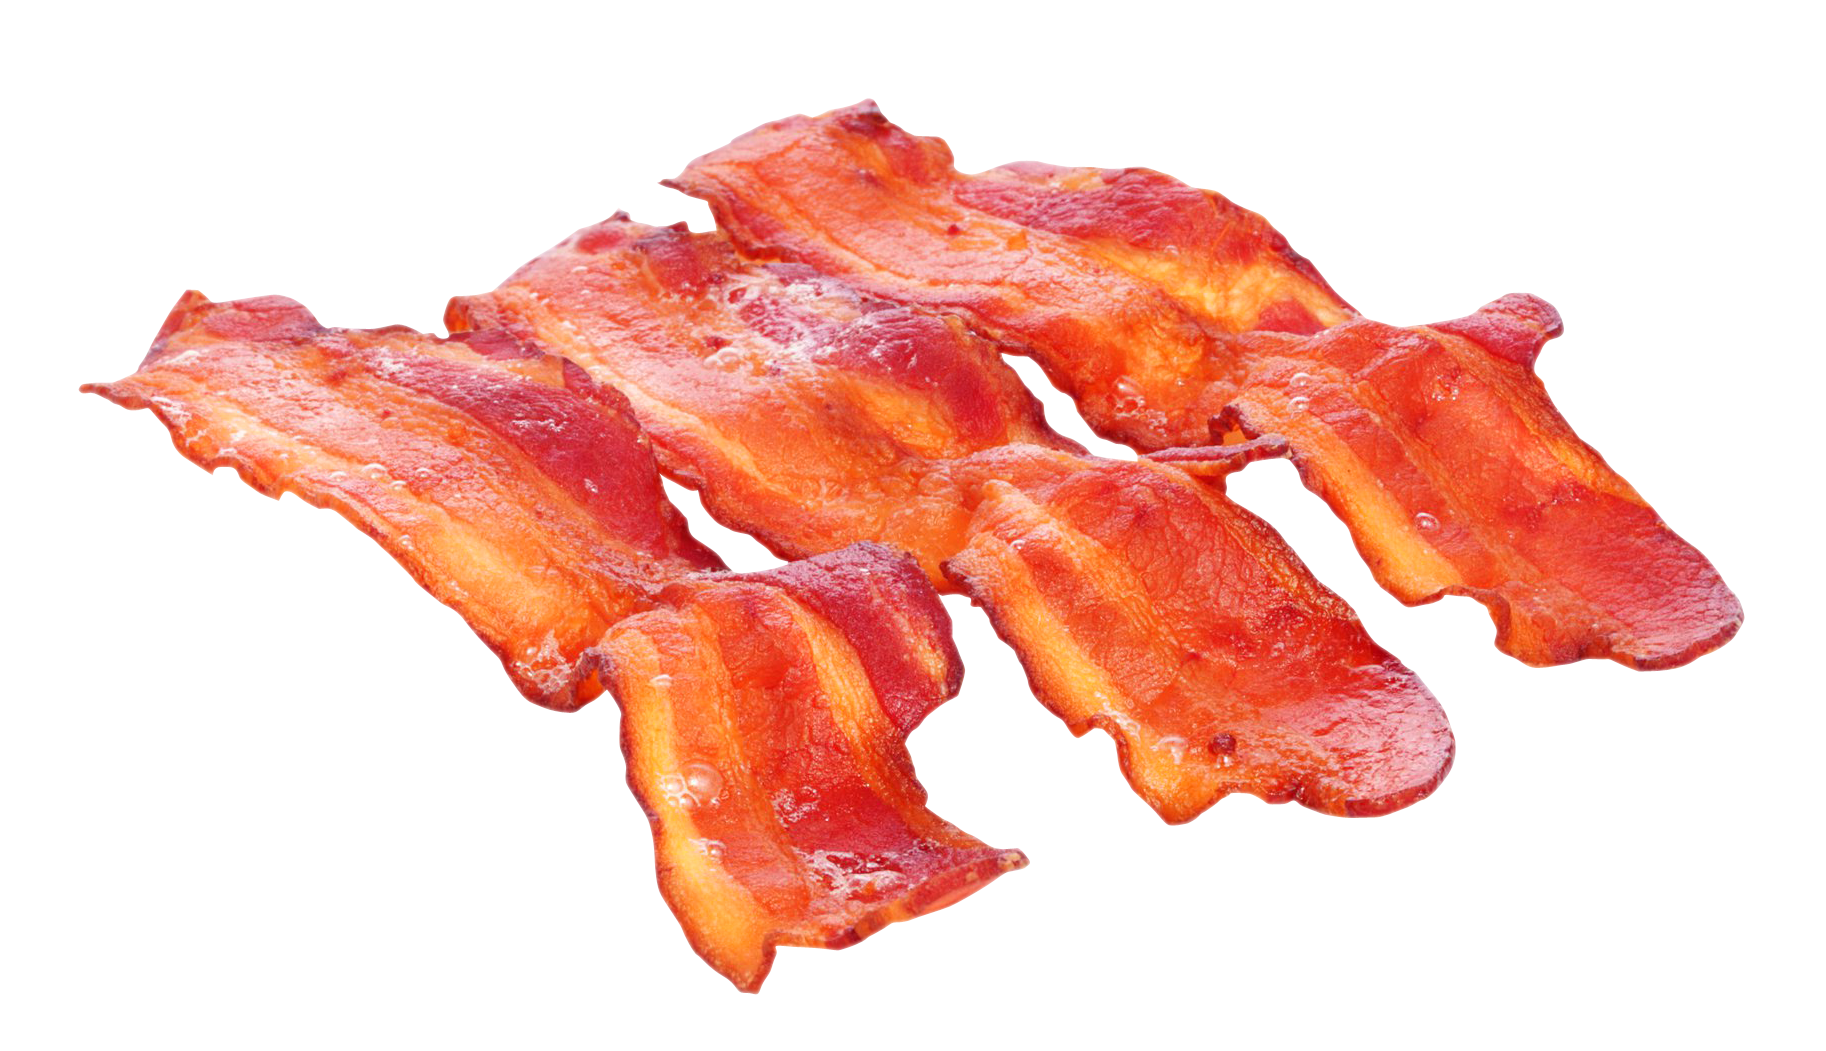 Bacon PNG Image image #44370